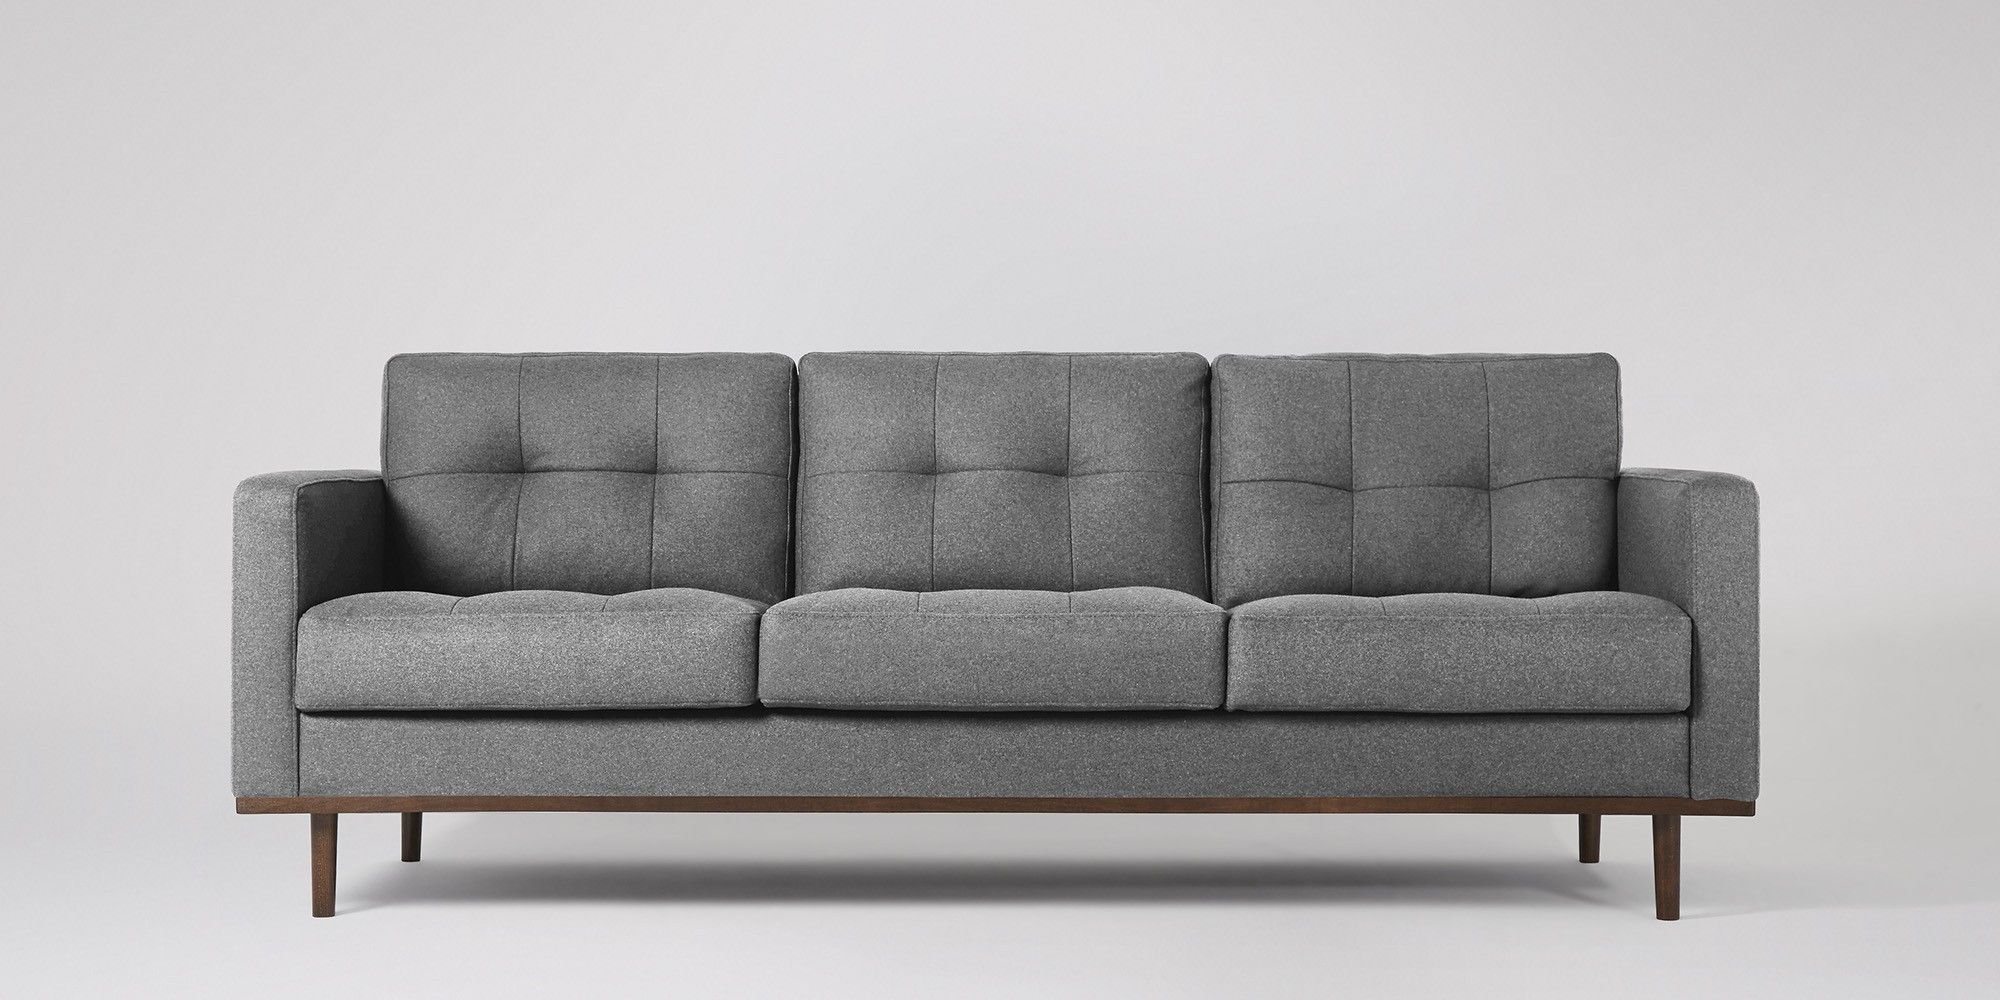 Sofa Berlin Design Berlin Sofa Three Seater Sofa Sofa Fabric Sofa